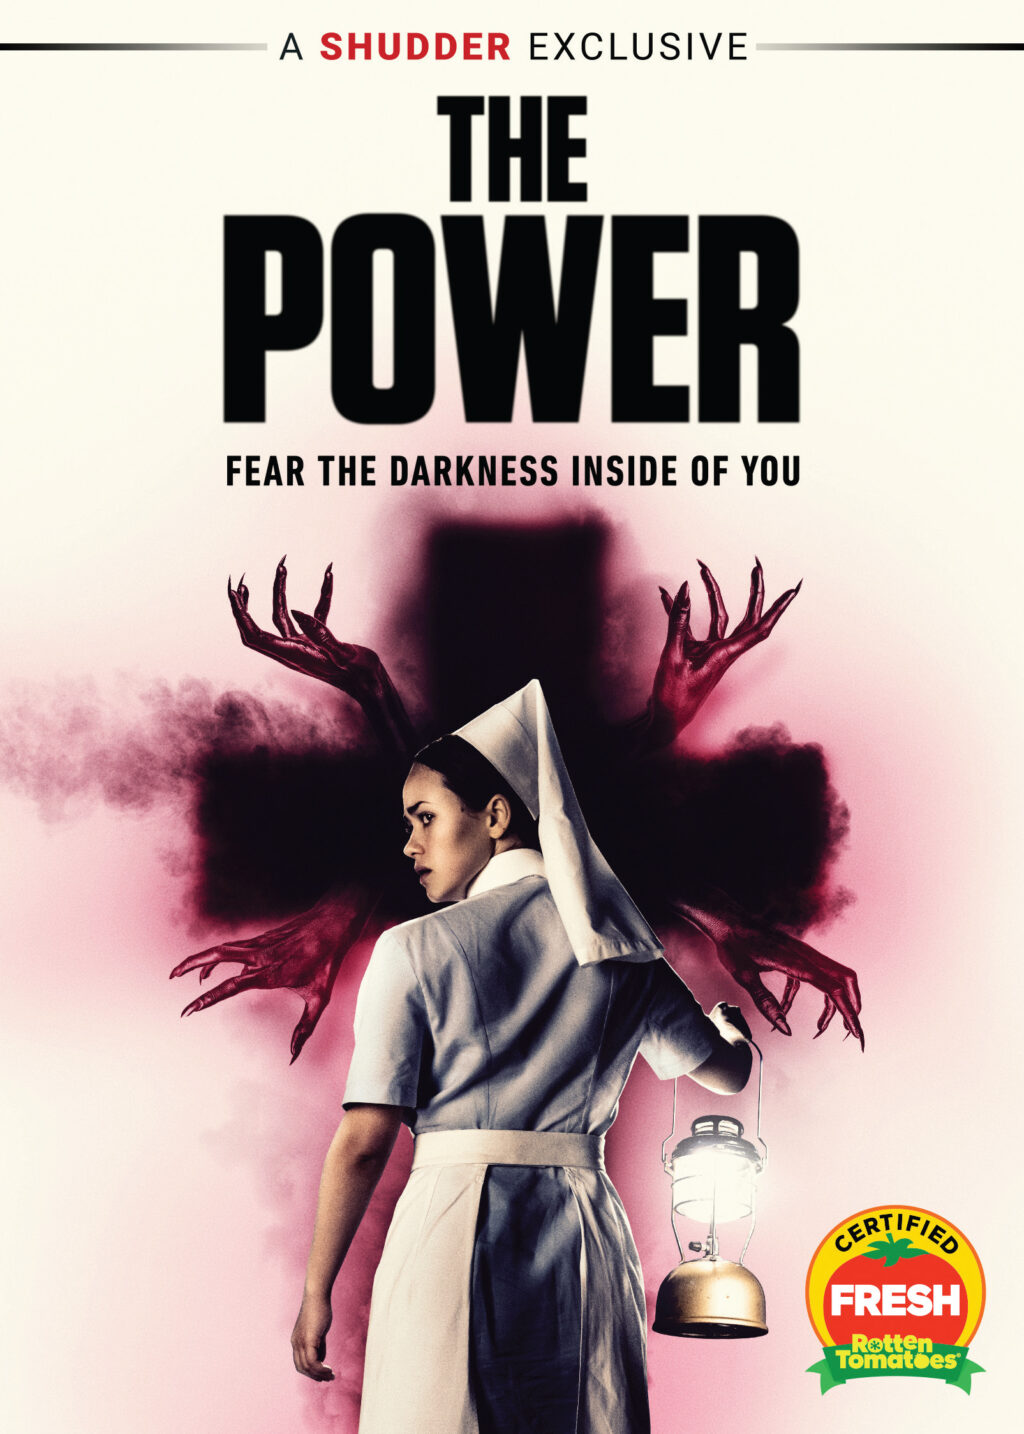 ThePower DVD HIC 1024x1434 - Contest: Win a Copy of 'The Power' on DVD